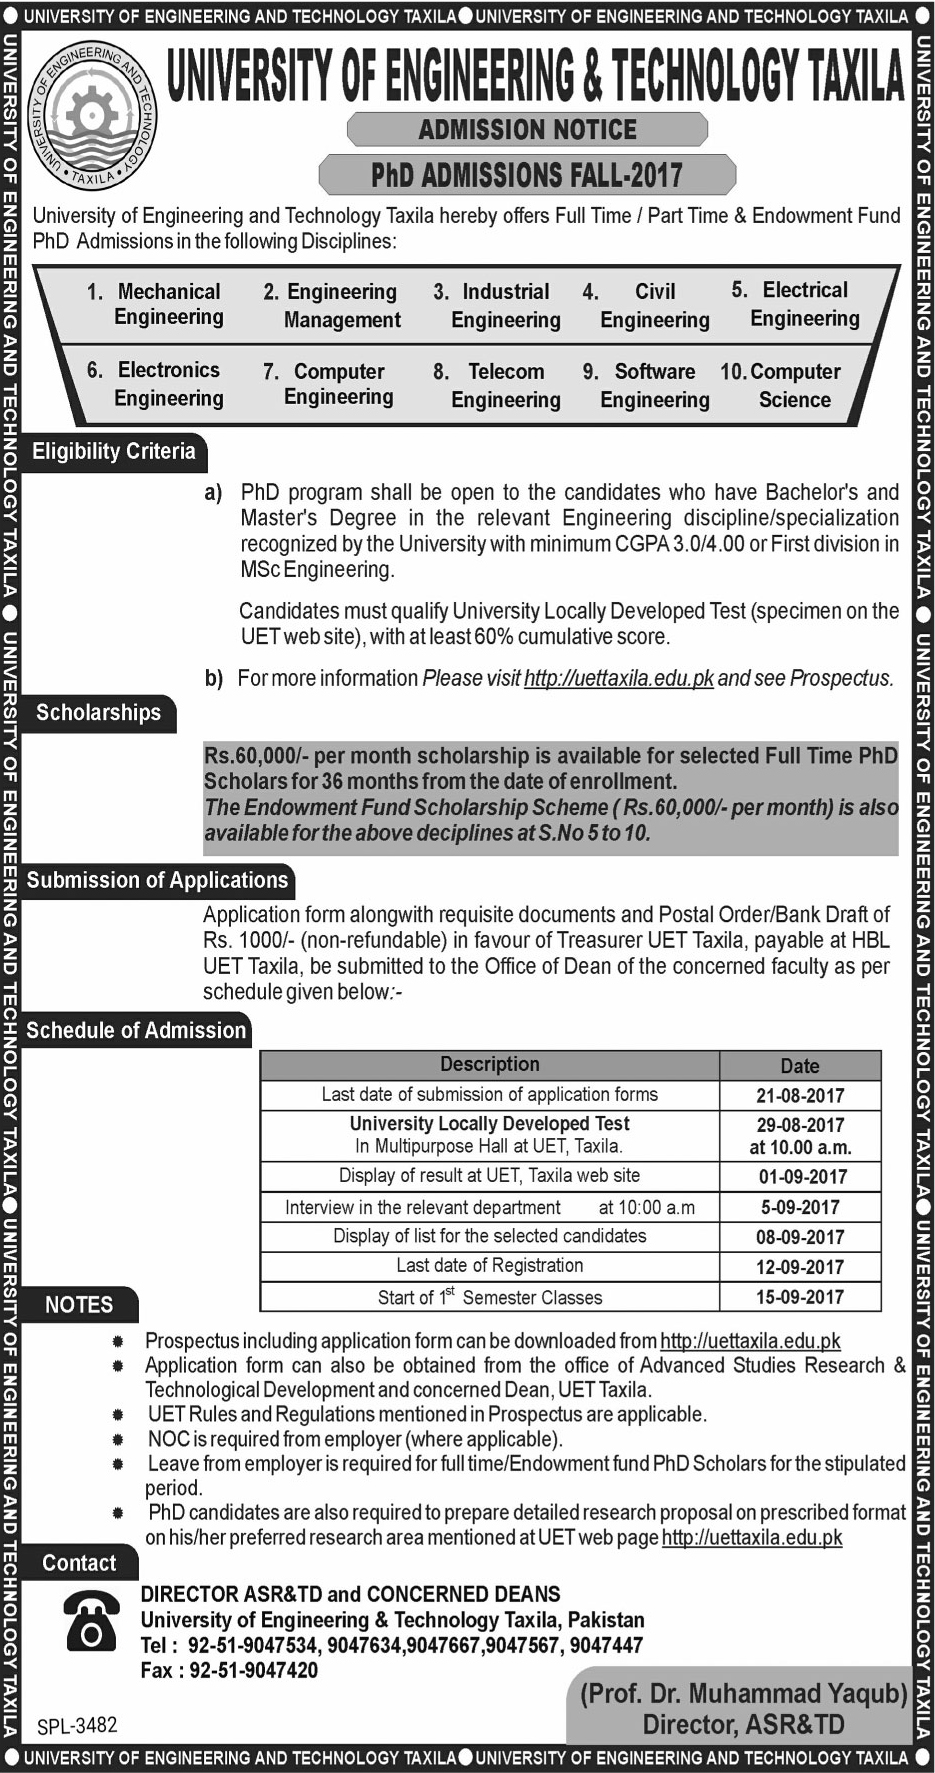 UET Taxila PhD Admission 2017 Fall Schedule, Application Form